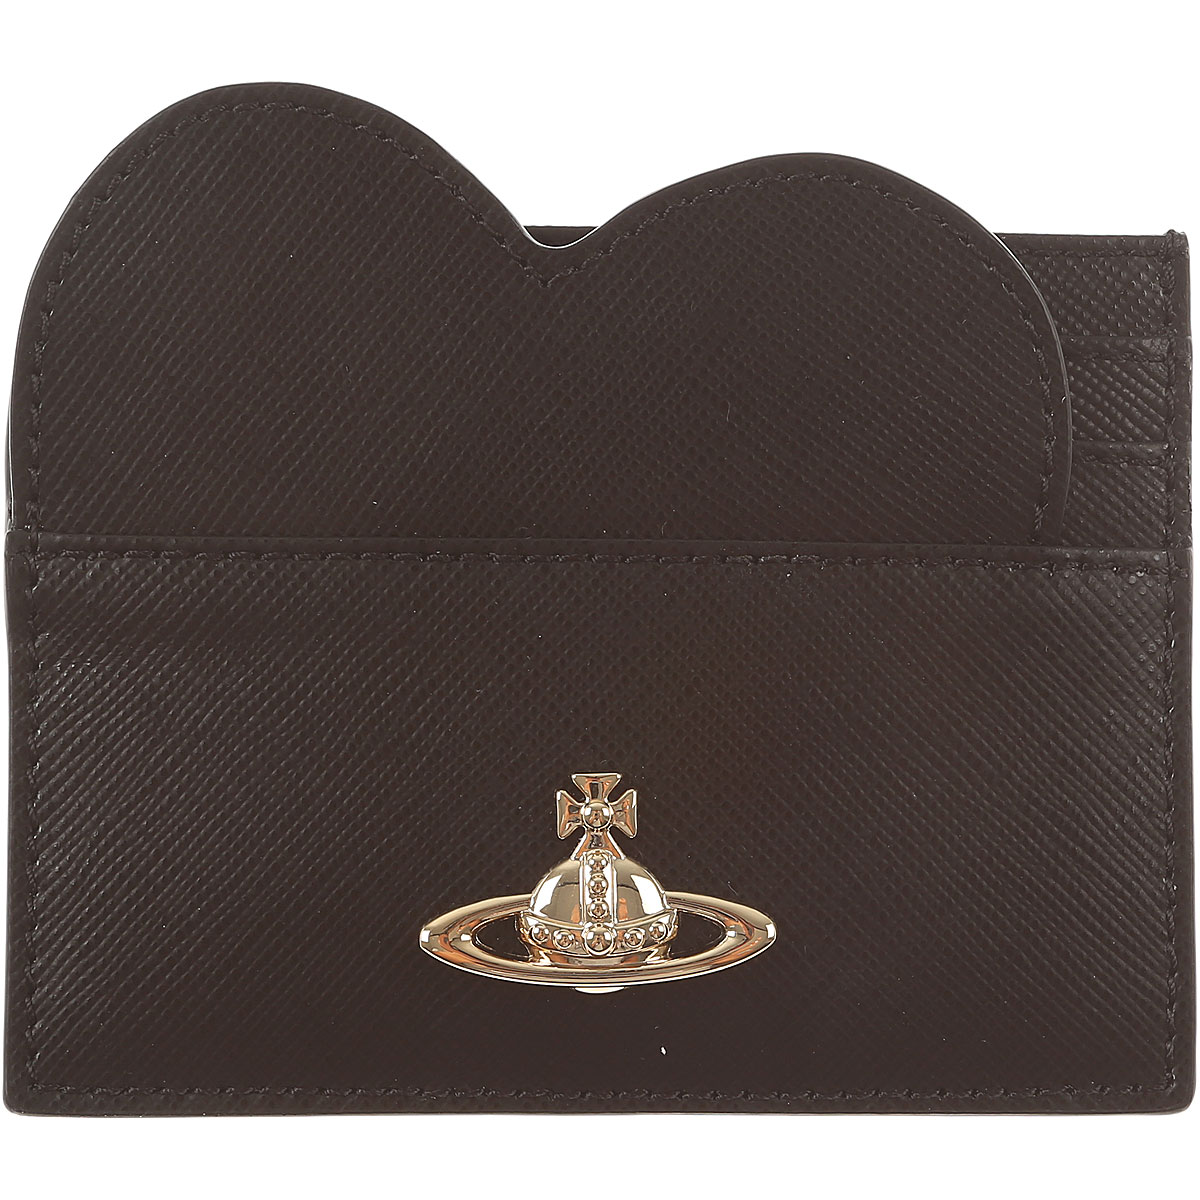 Vivienne Westwood Card Holder for Women On Sale, Black, Leather, 2019, One size one size